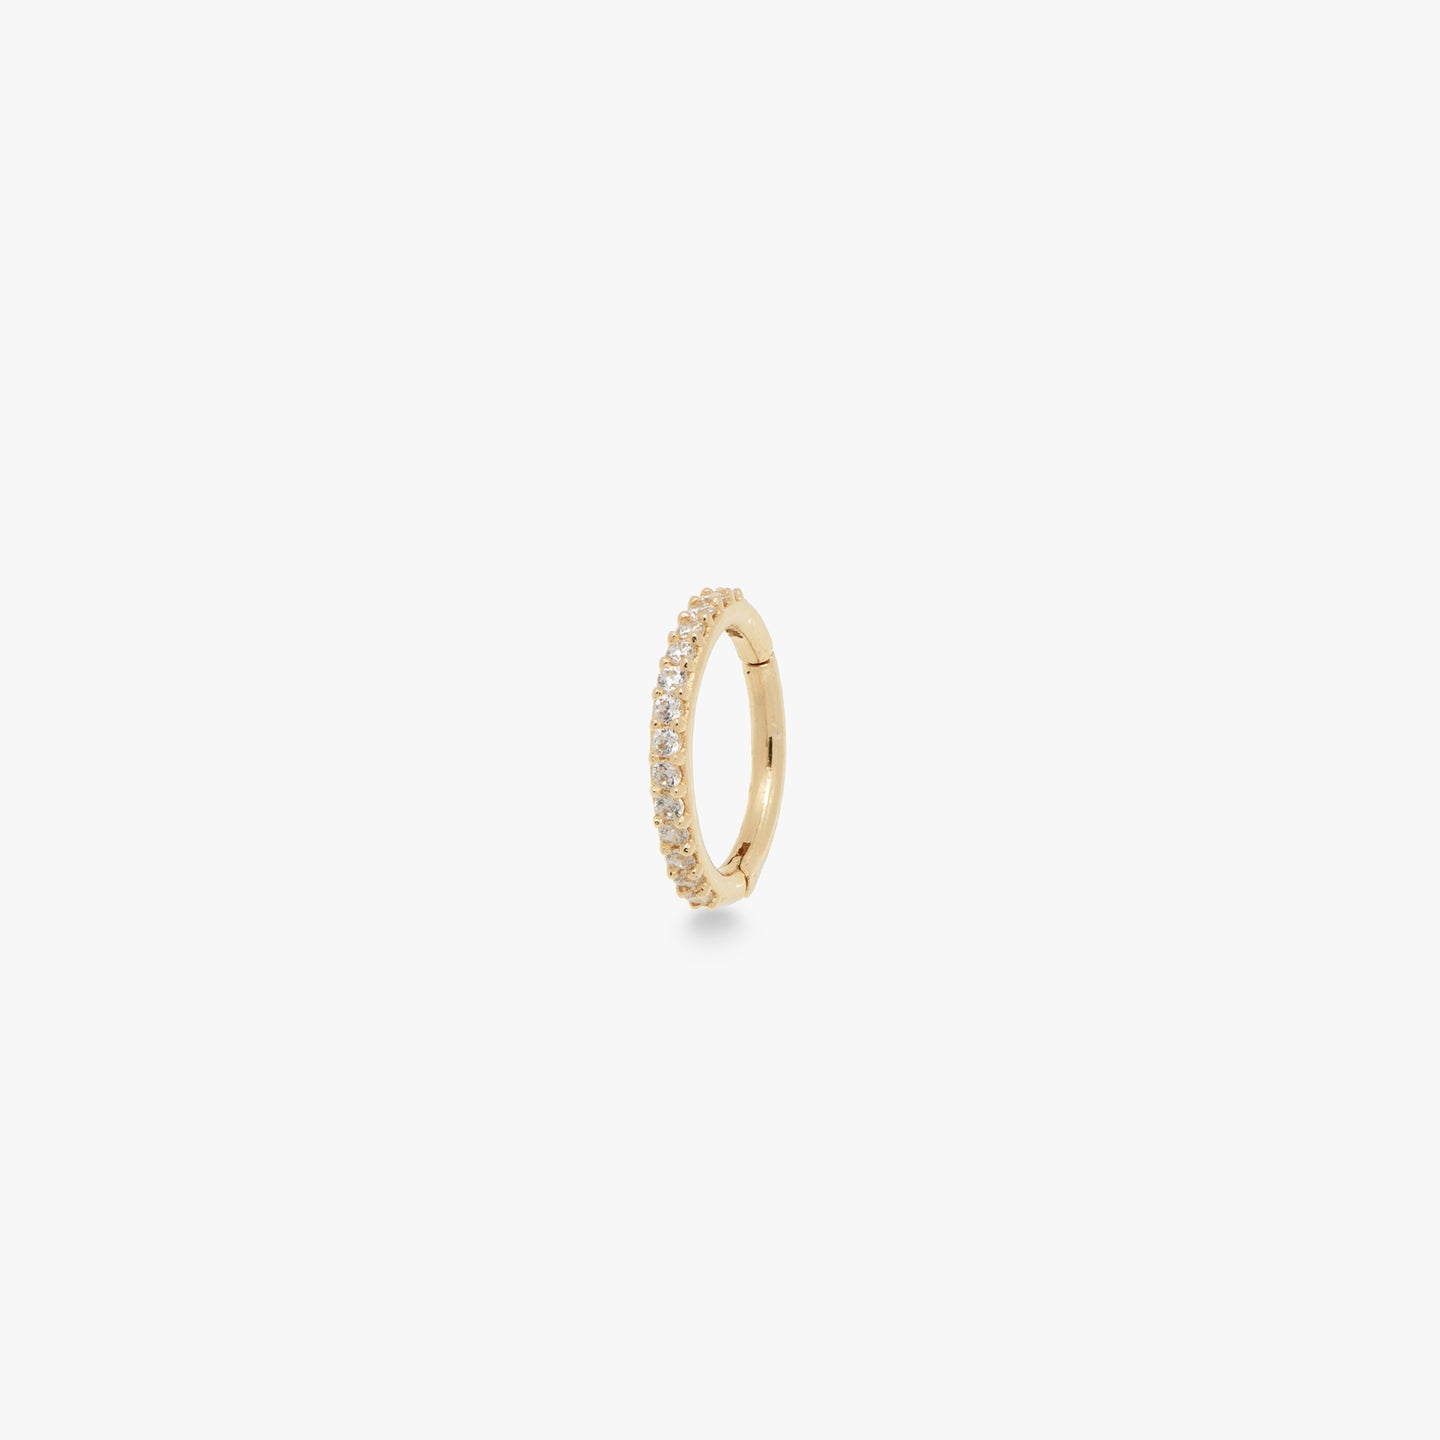 This clicker is a small 14k gold hoop with CZ front accents that measures at 8mm. color:gold/clear